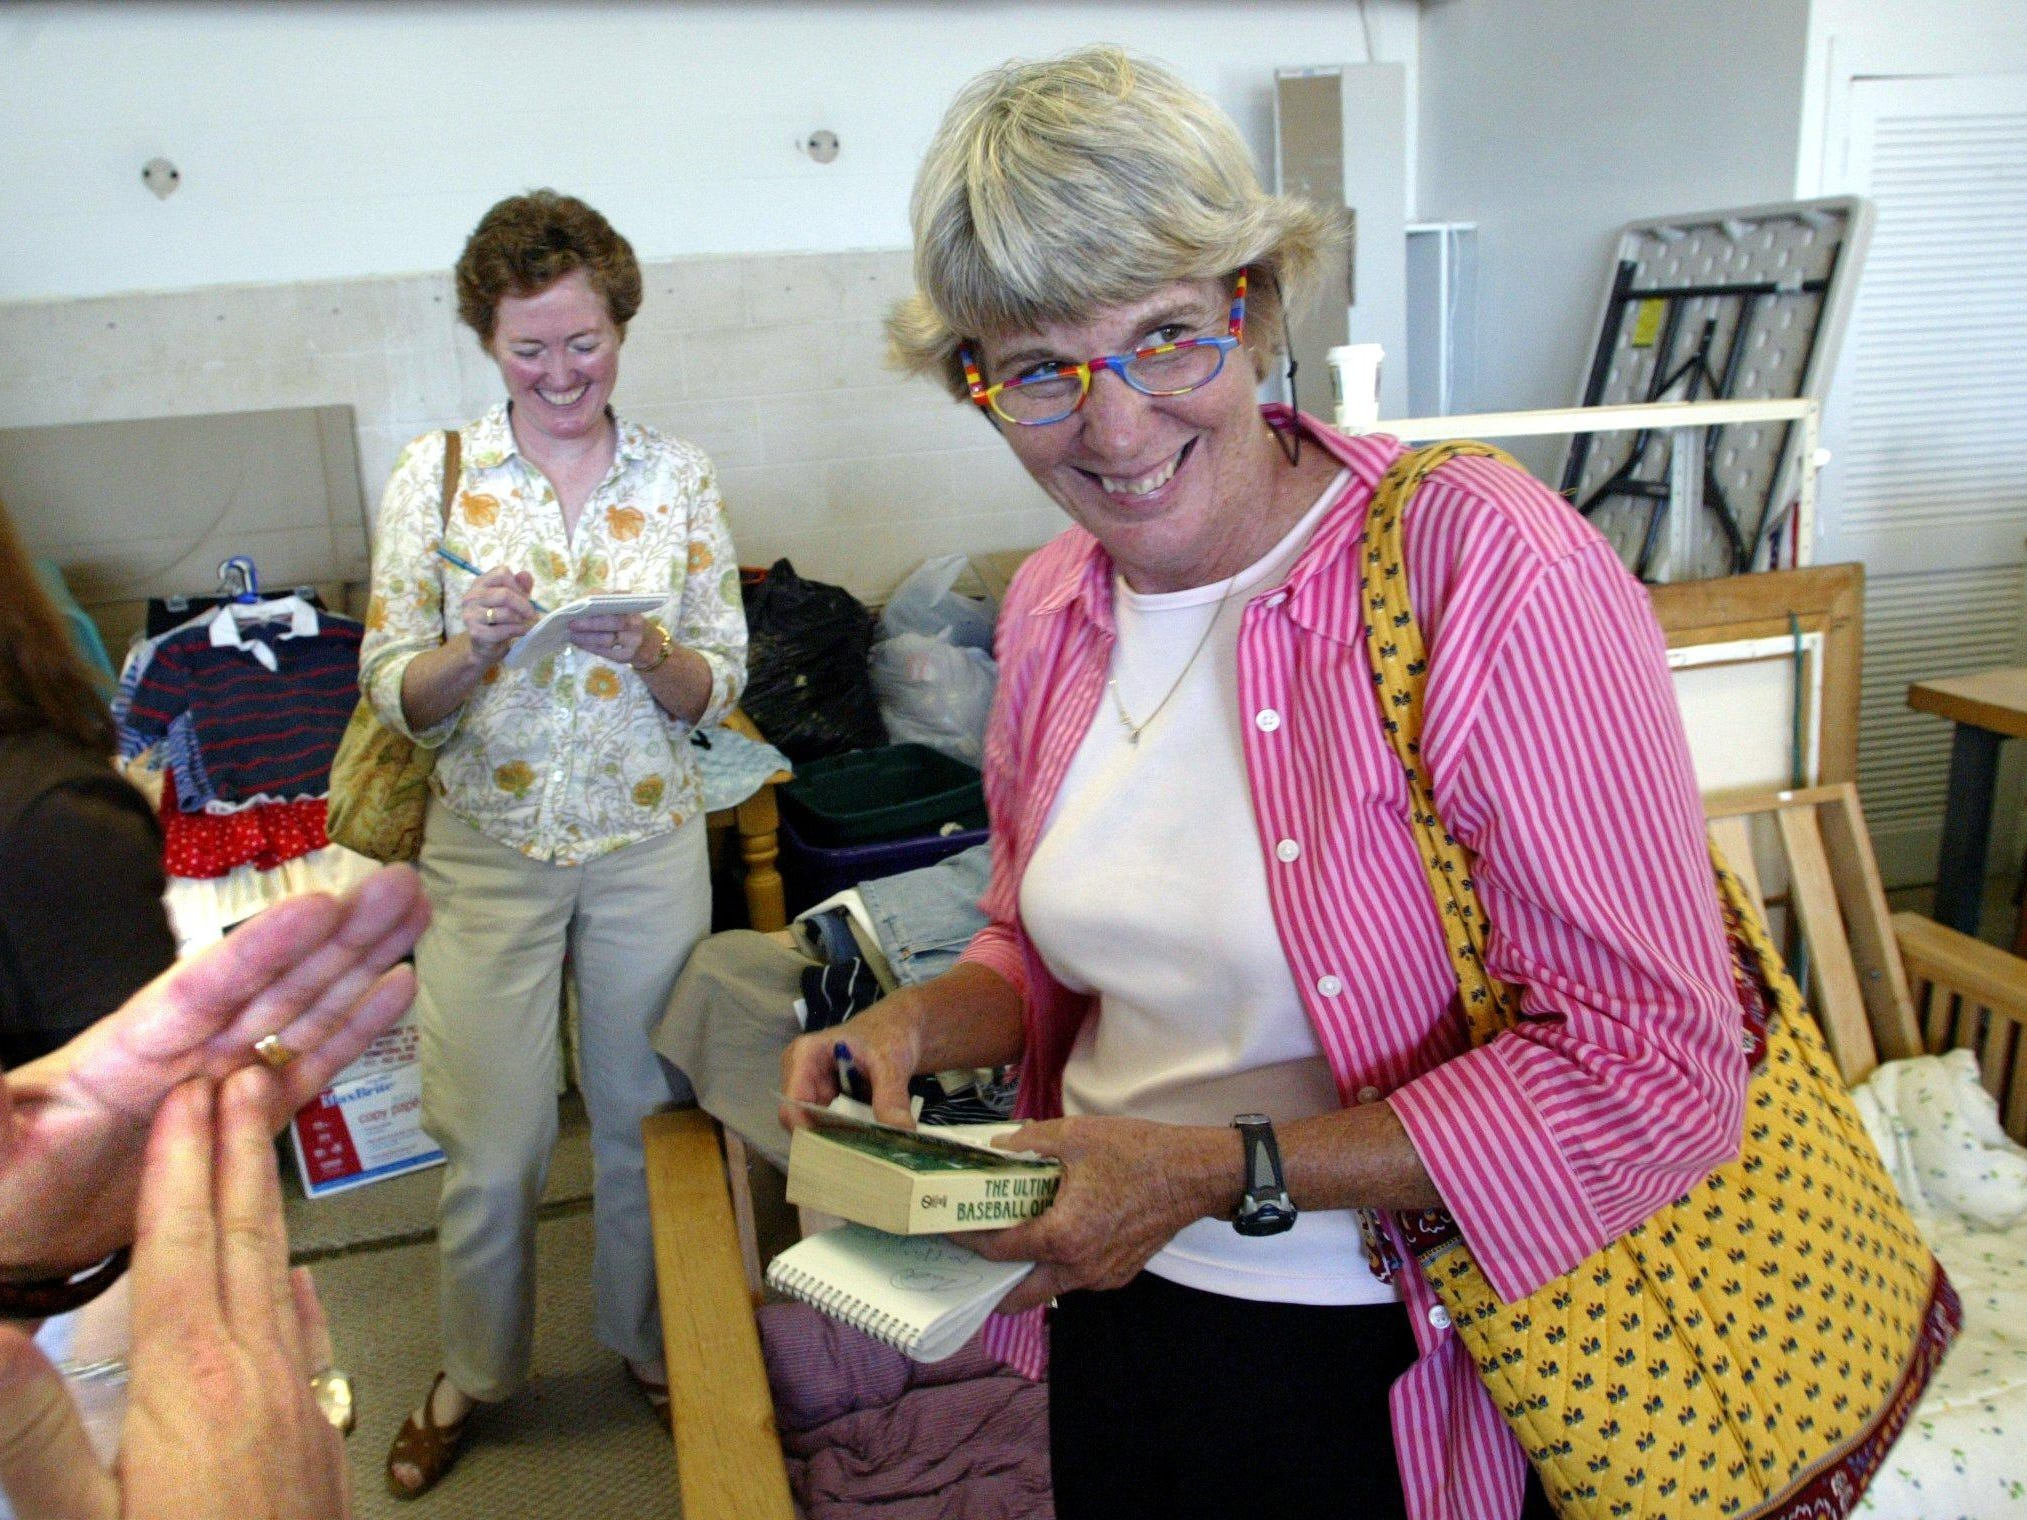 Mary Hance, The Tennessean's Ms. Cheap, right, bargains with an employee at Our Thrift Store in the back room of the store in Spring Hill as reporter Sue McClure takes notes June 22, 2005.